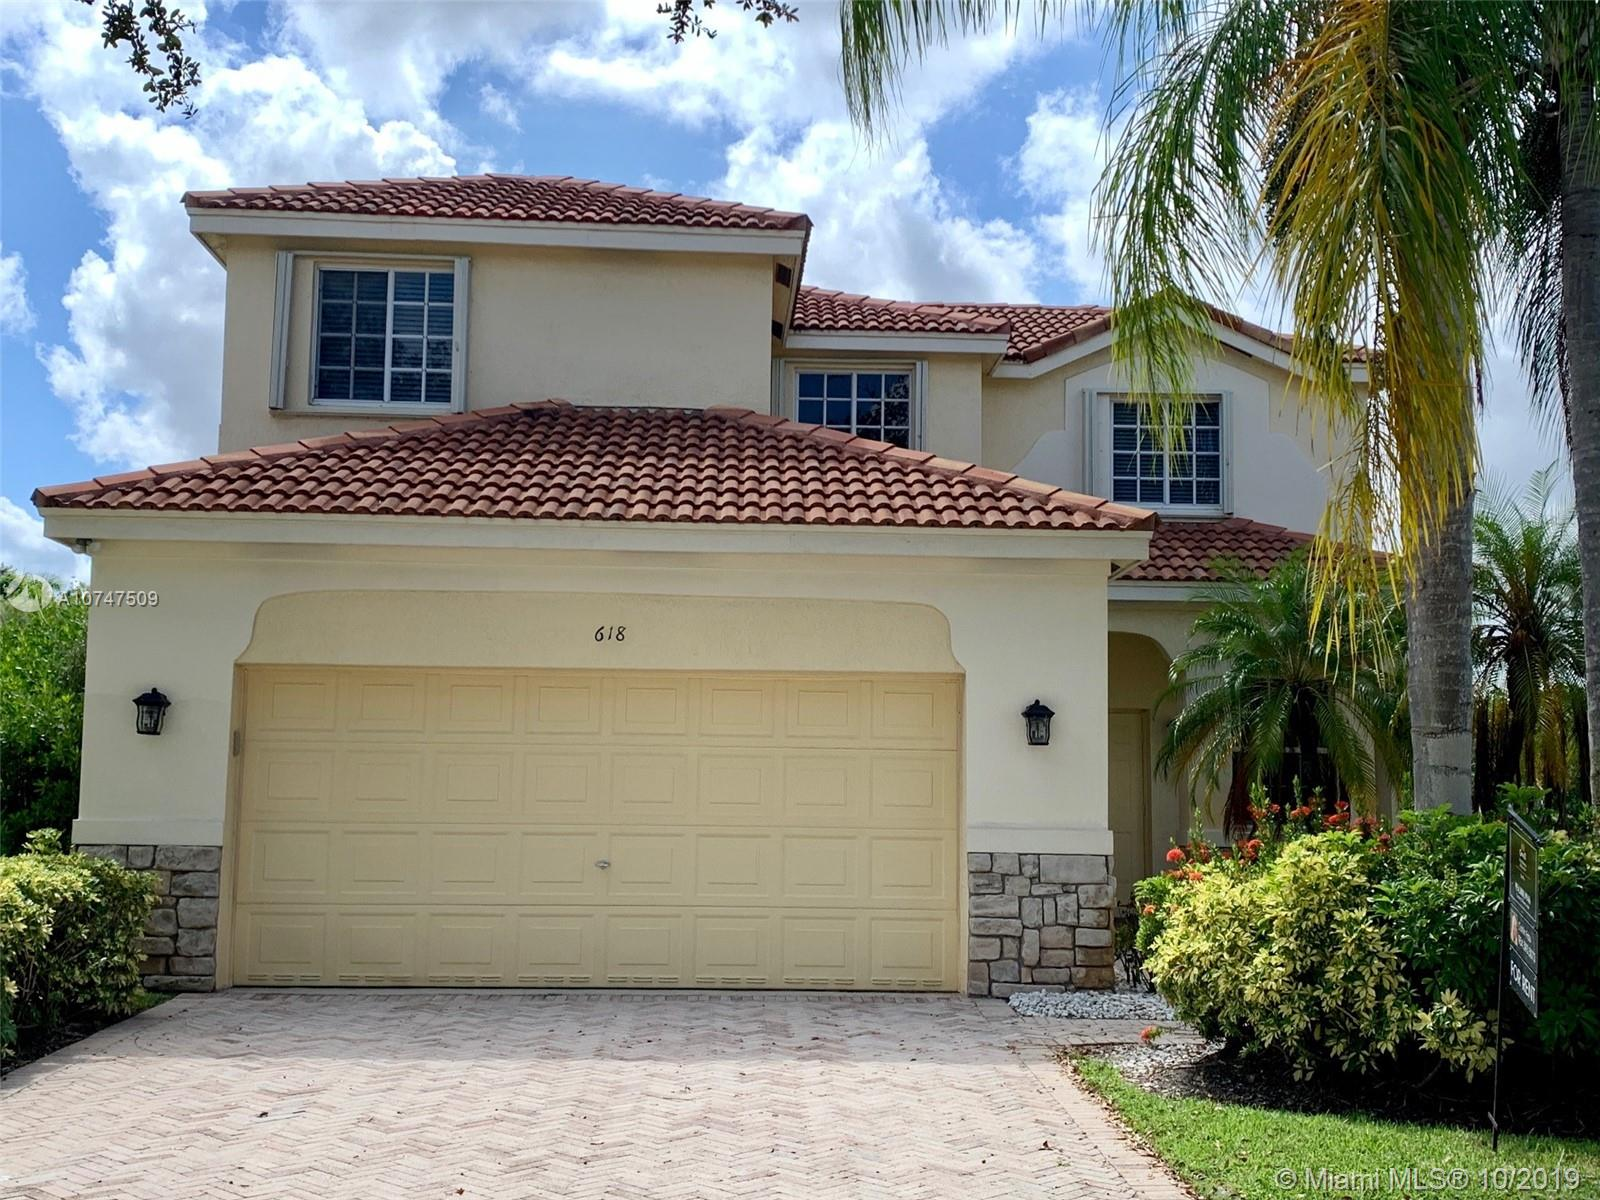 primary photo for 618 Willow Bend Rd, Weston, FL 33327, US